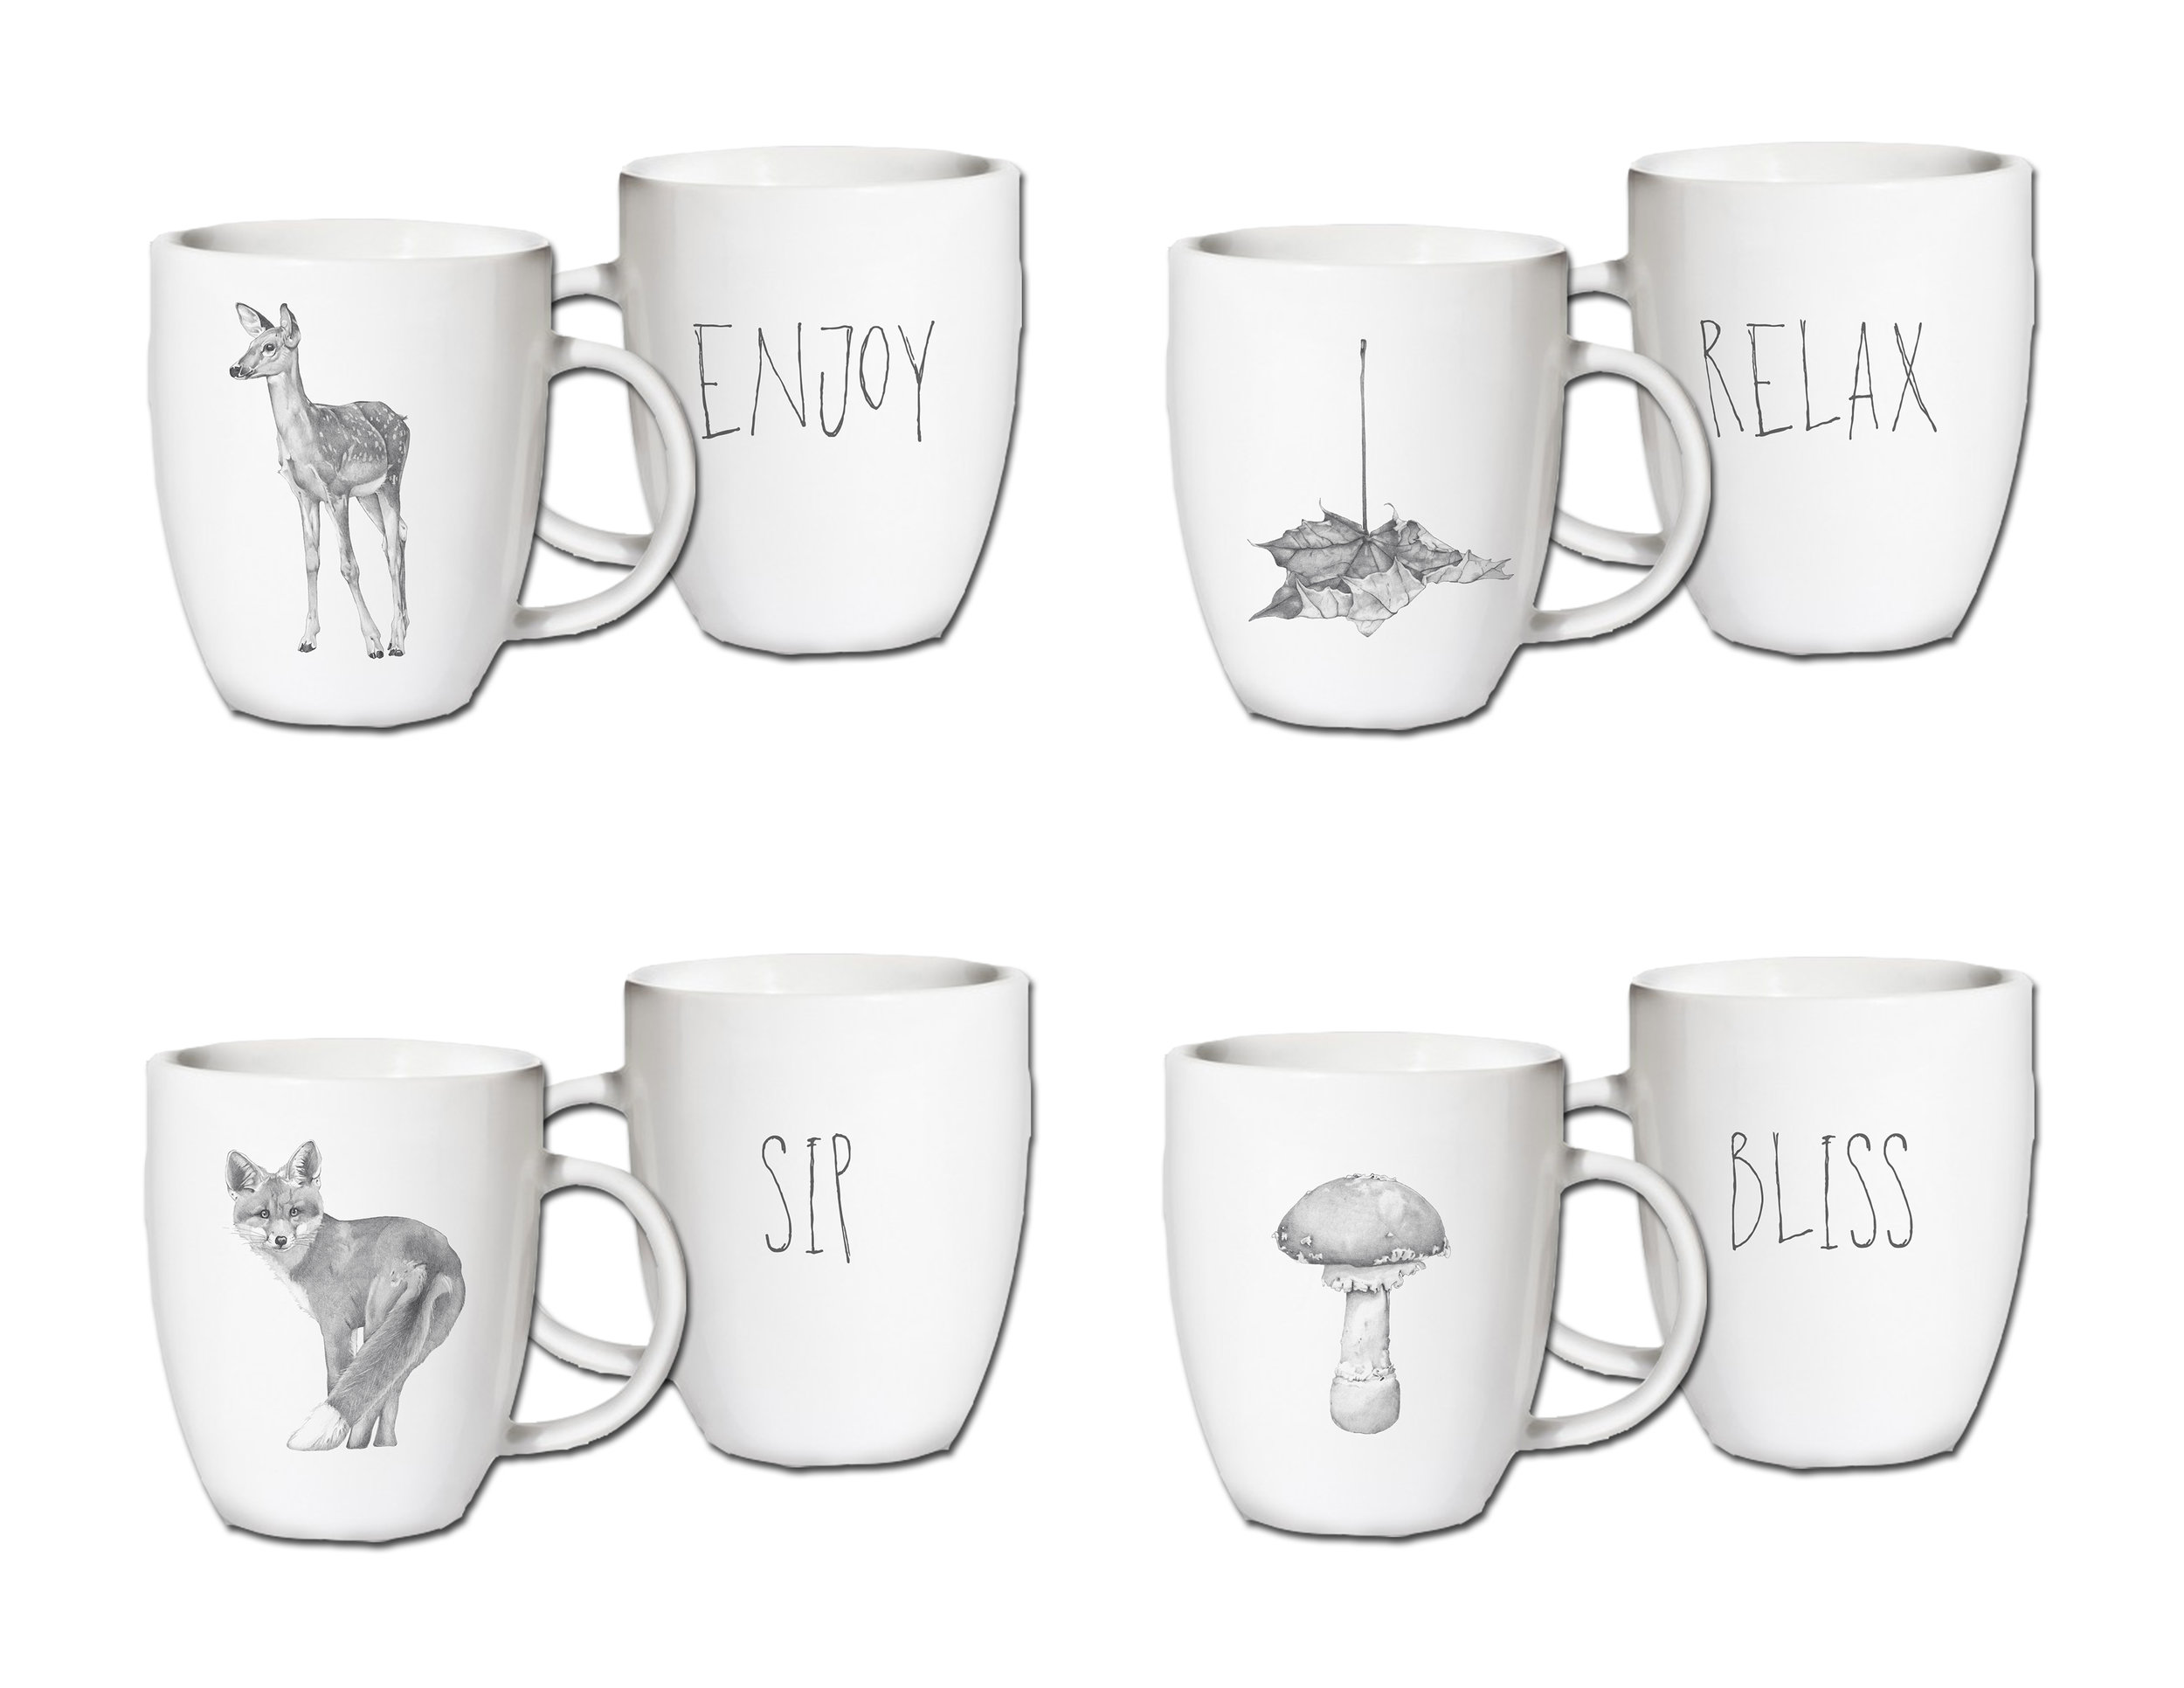 CA Fall 18 images and words mugs.jpg